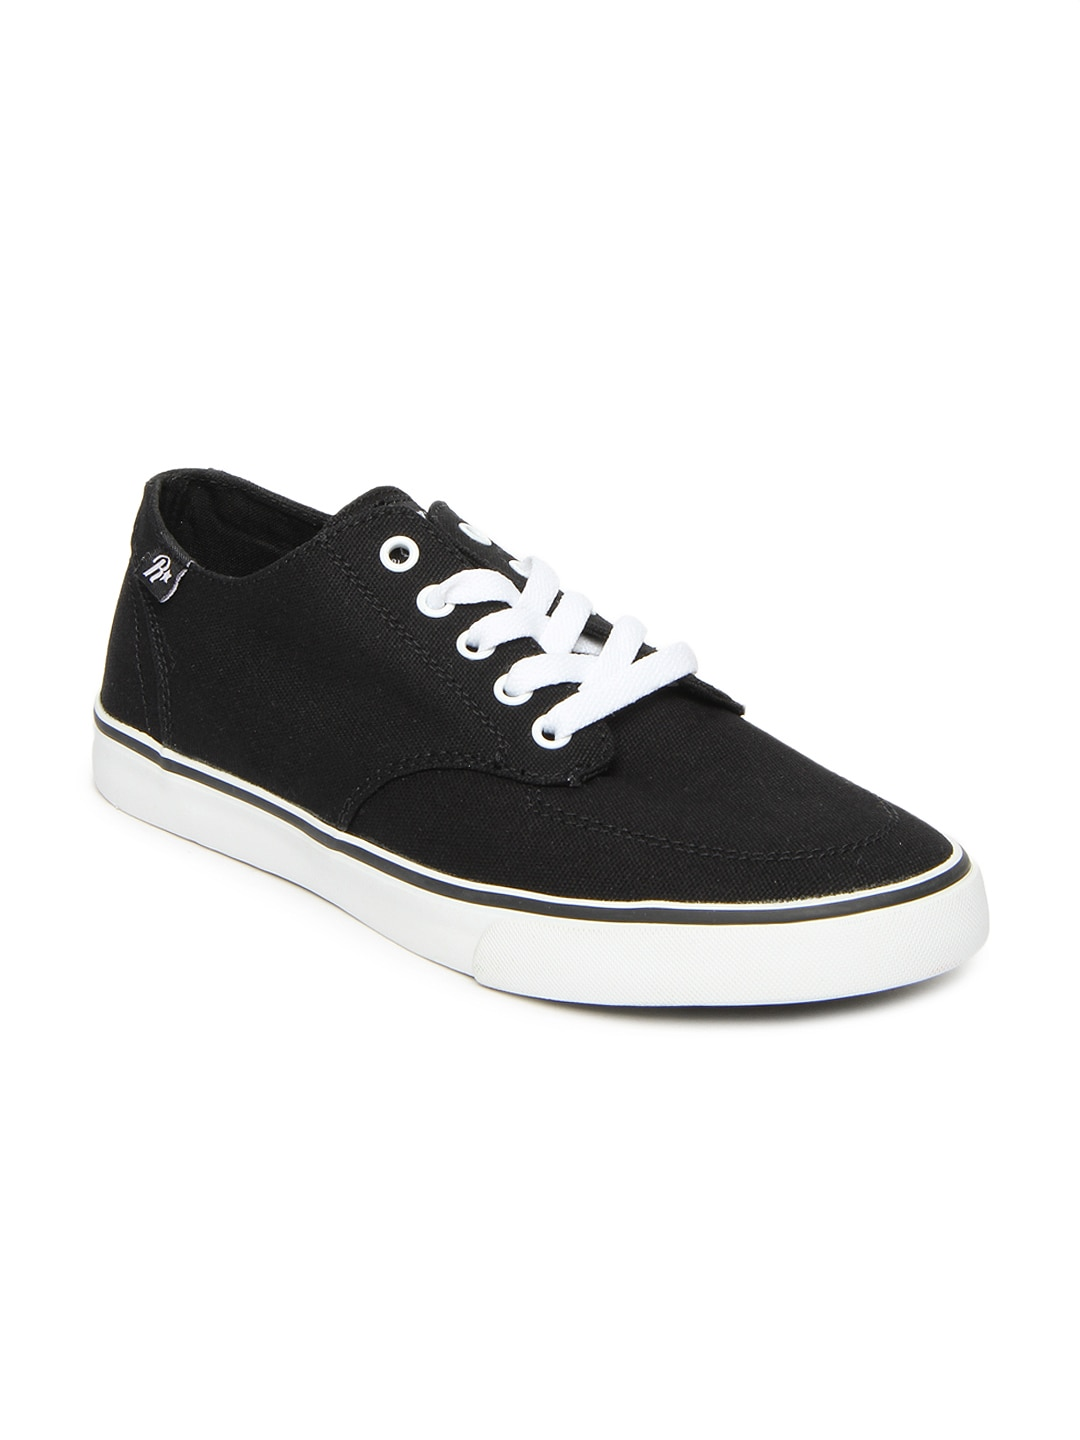 Shop for canvas shoes at grounwhijwgg.cf Free Shipping. Free Returns. All the time.